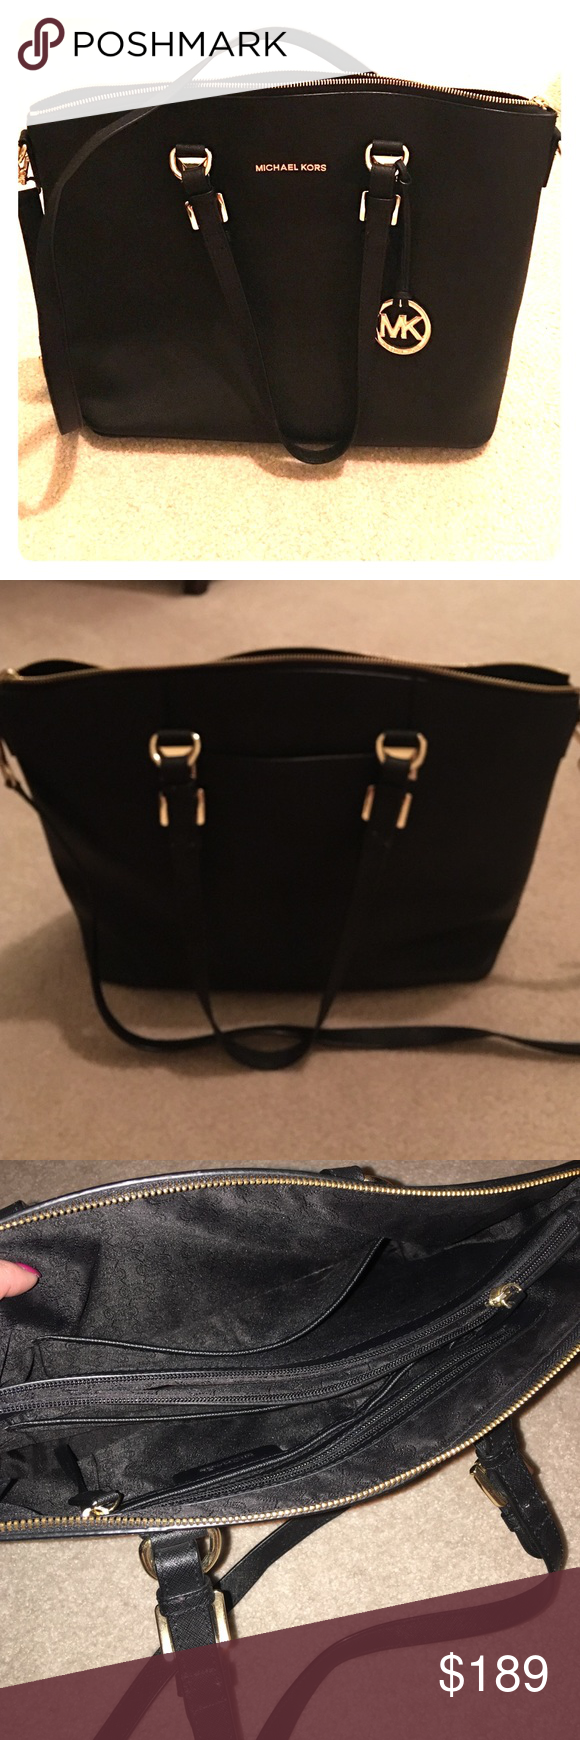 Michael Kors Apple Airbook purse/bag This is the perfect bag with plenty of storage! It has an inner divider pocket that zips closed with your airbook tucked inside. It features plenty of pockets for all of your things including an outside pocket big enough for an iPhone 6 Plus. This bag was barely carried and is in near perfect condition. Cross-body strap and dust bag included. Michael Kors Bags Laptop Bags